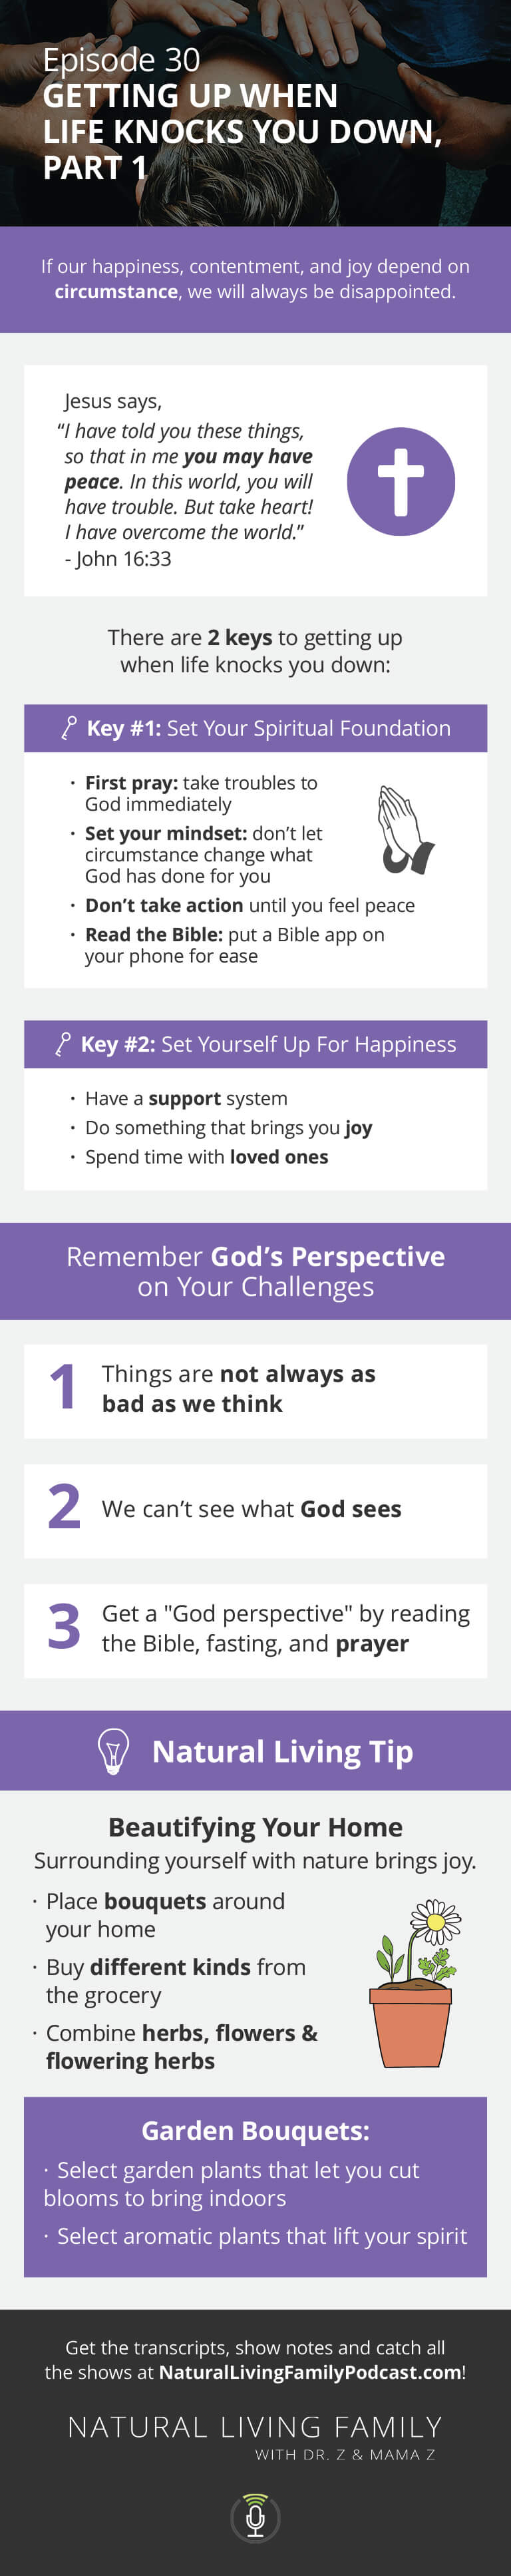 Getting Up when Life Knocks You Down (Part 1): Rallying Support, Family Time & Setting a Spiritual Foundation - Podcast Episode 30 Infographic